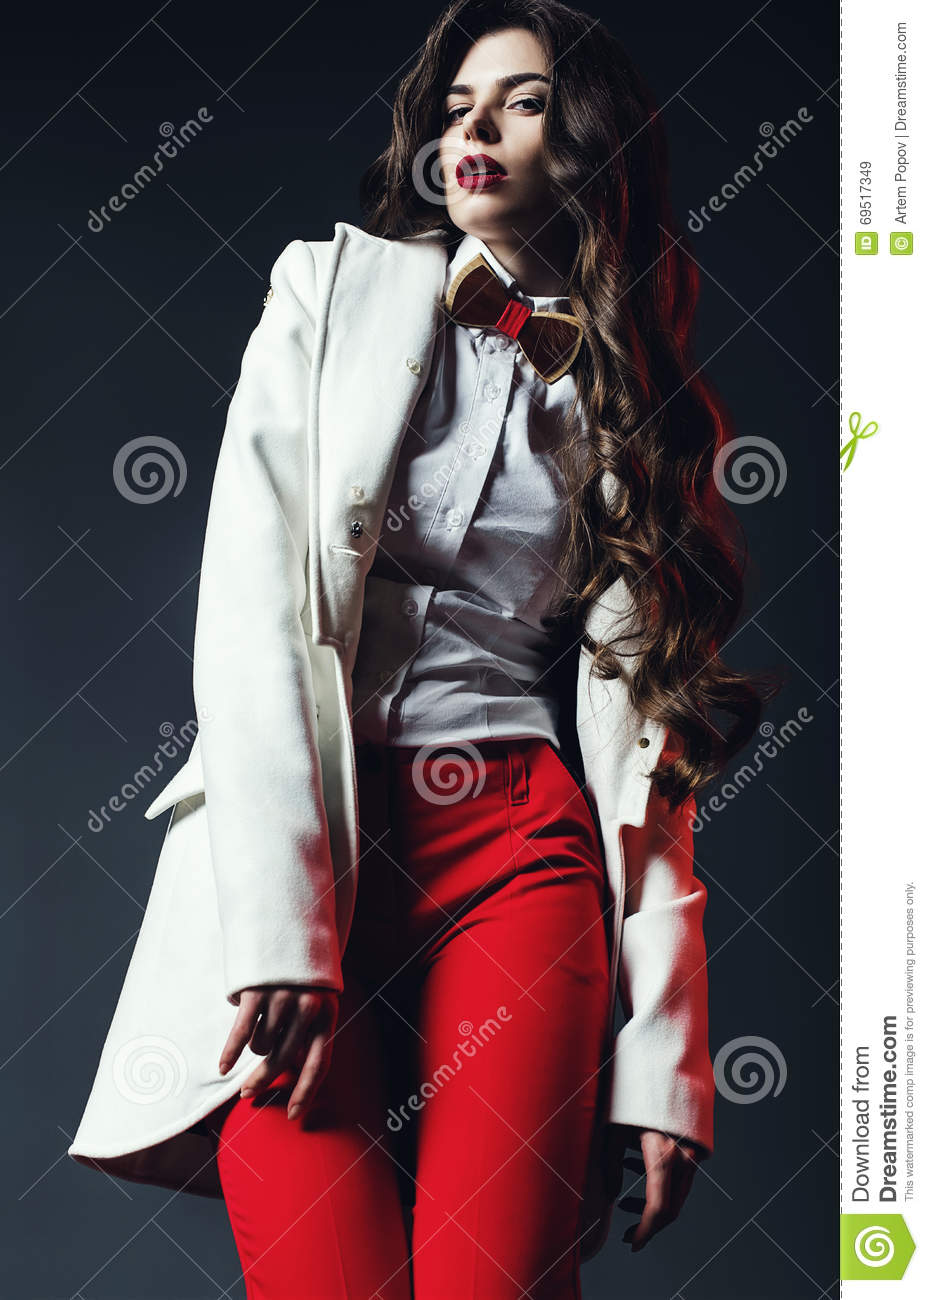 Elegant Woman In White Shirt With Bow Tie And In Red Pants ...